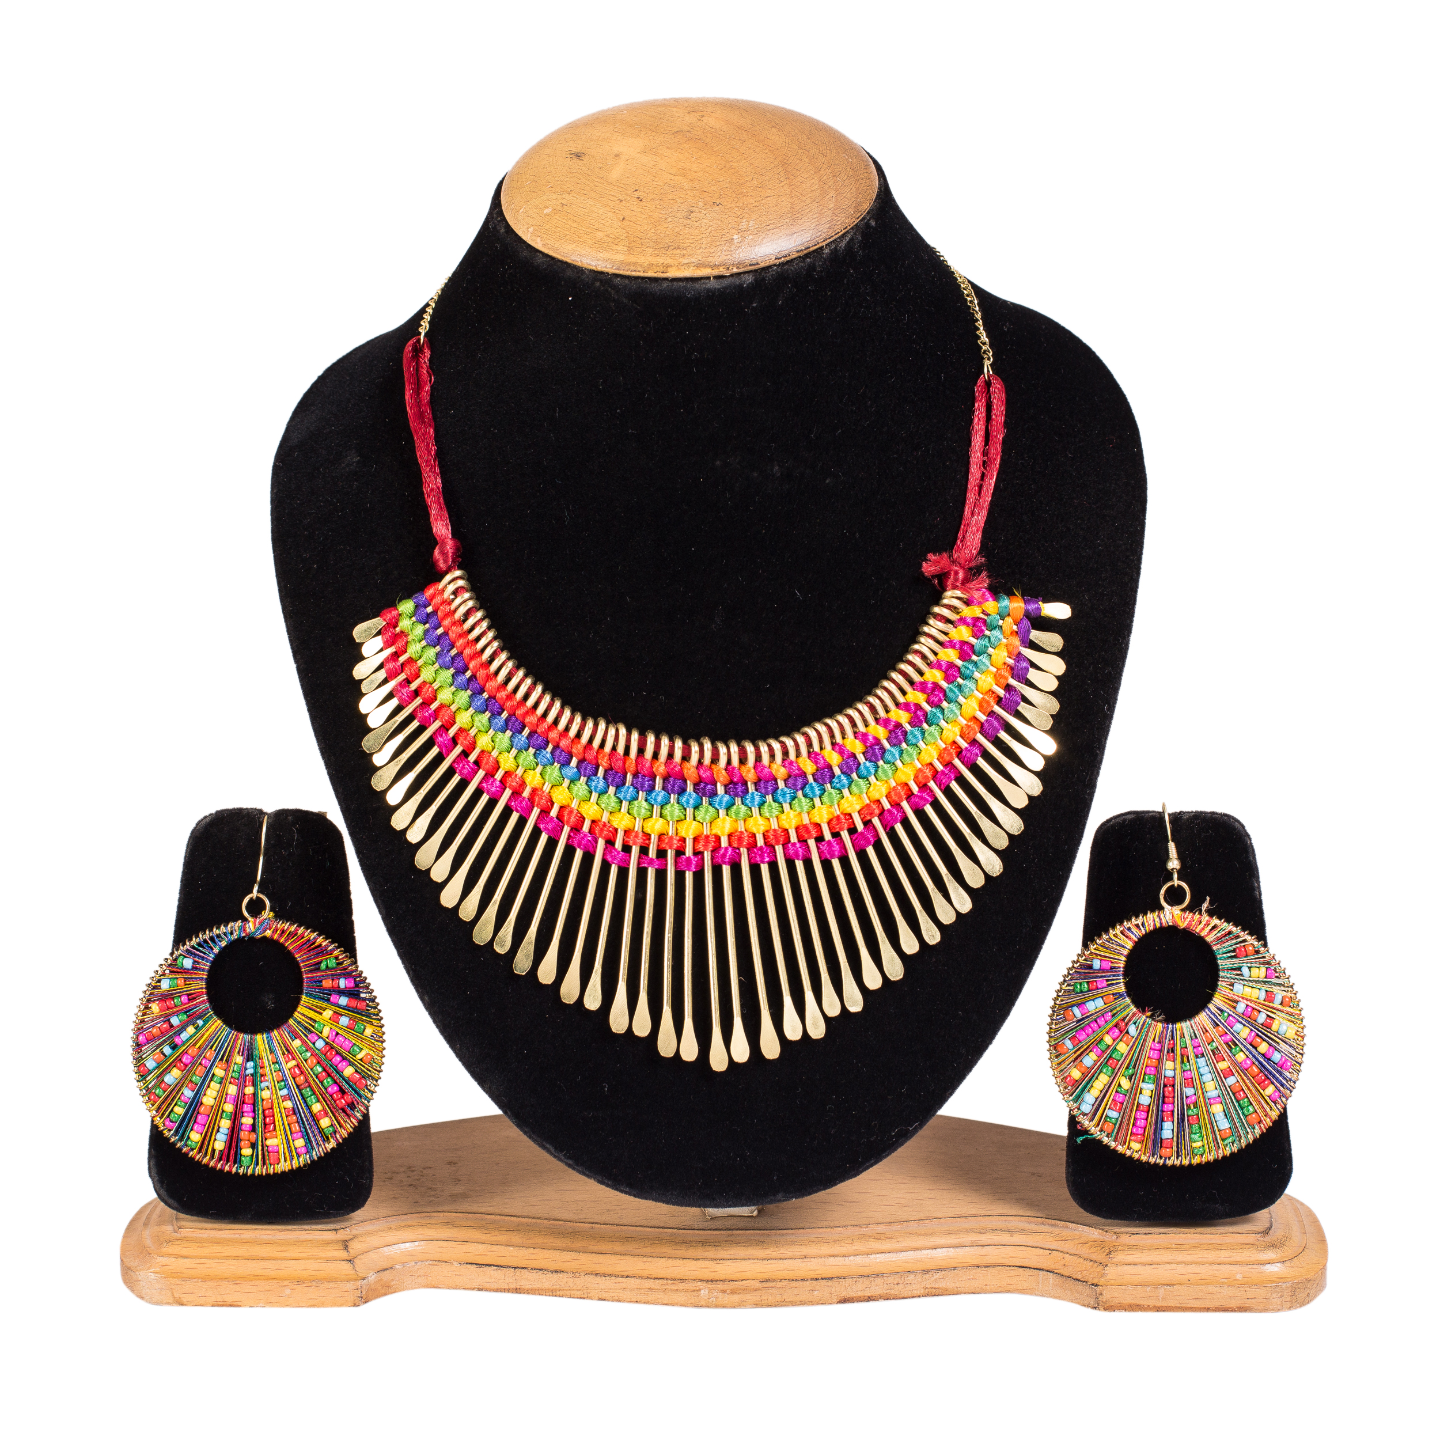 FAZZN Necklace & Earrings Combo - 1